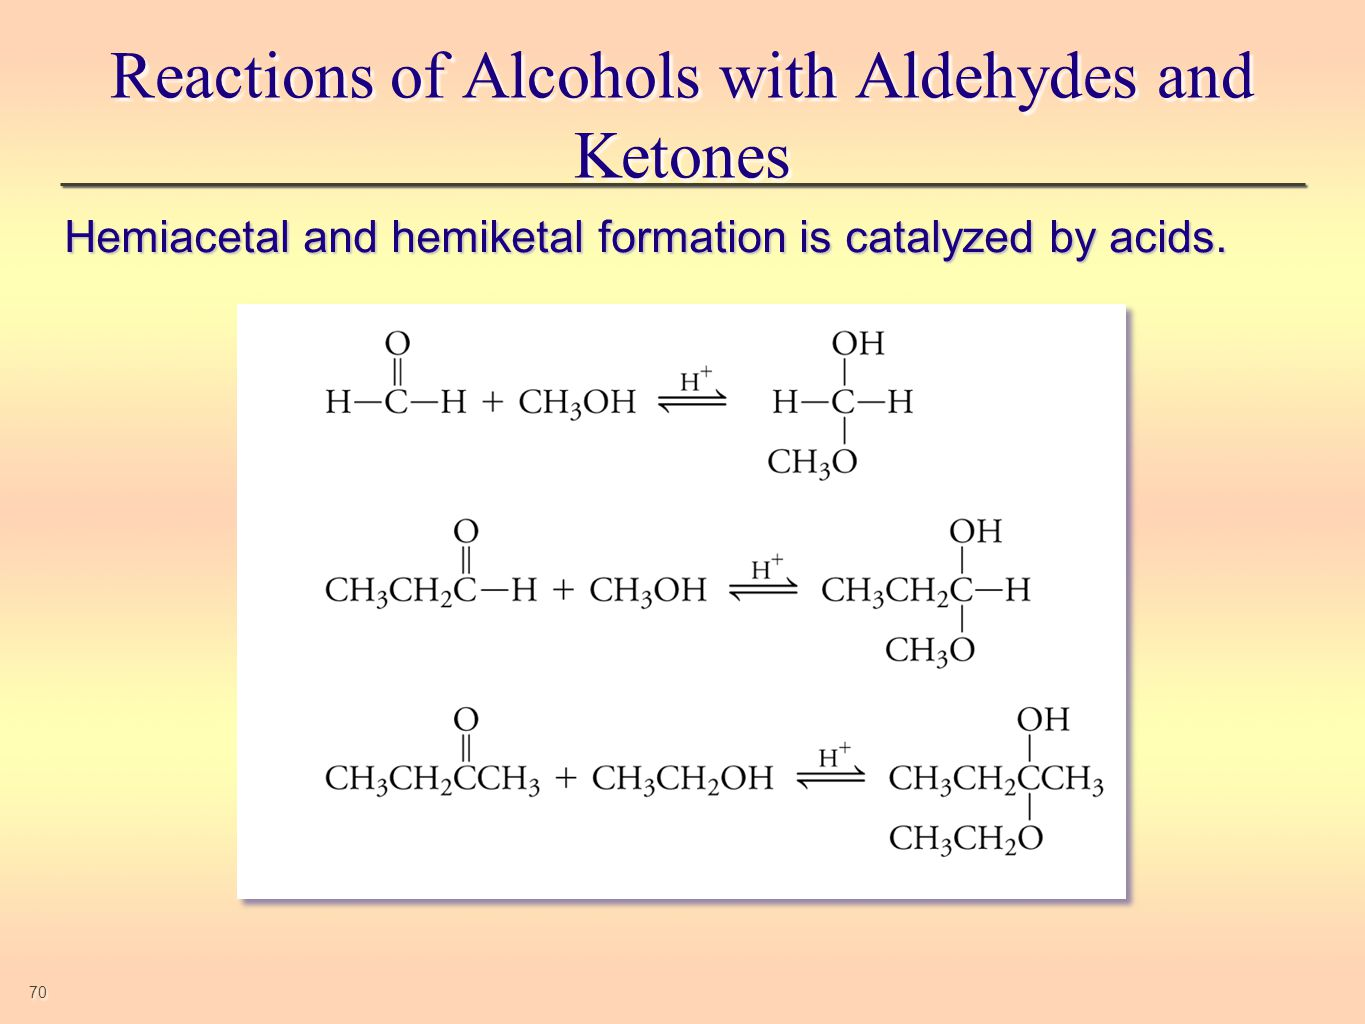 reactions of aldehydes and ketones pdf